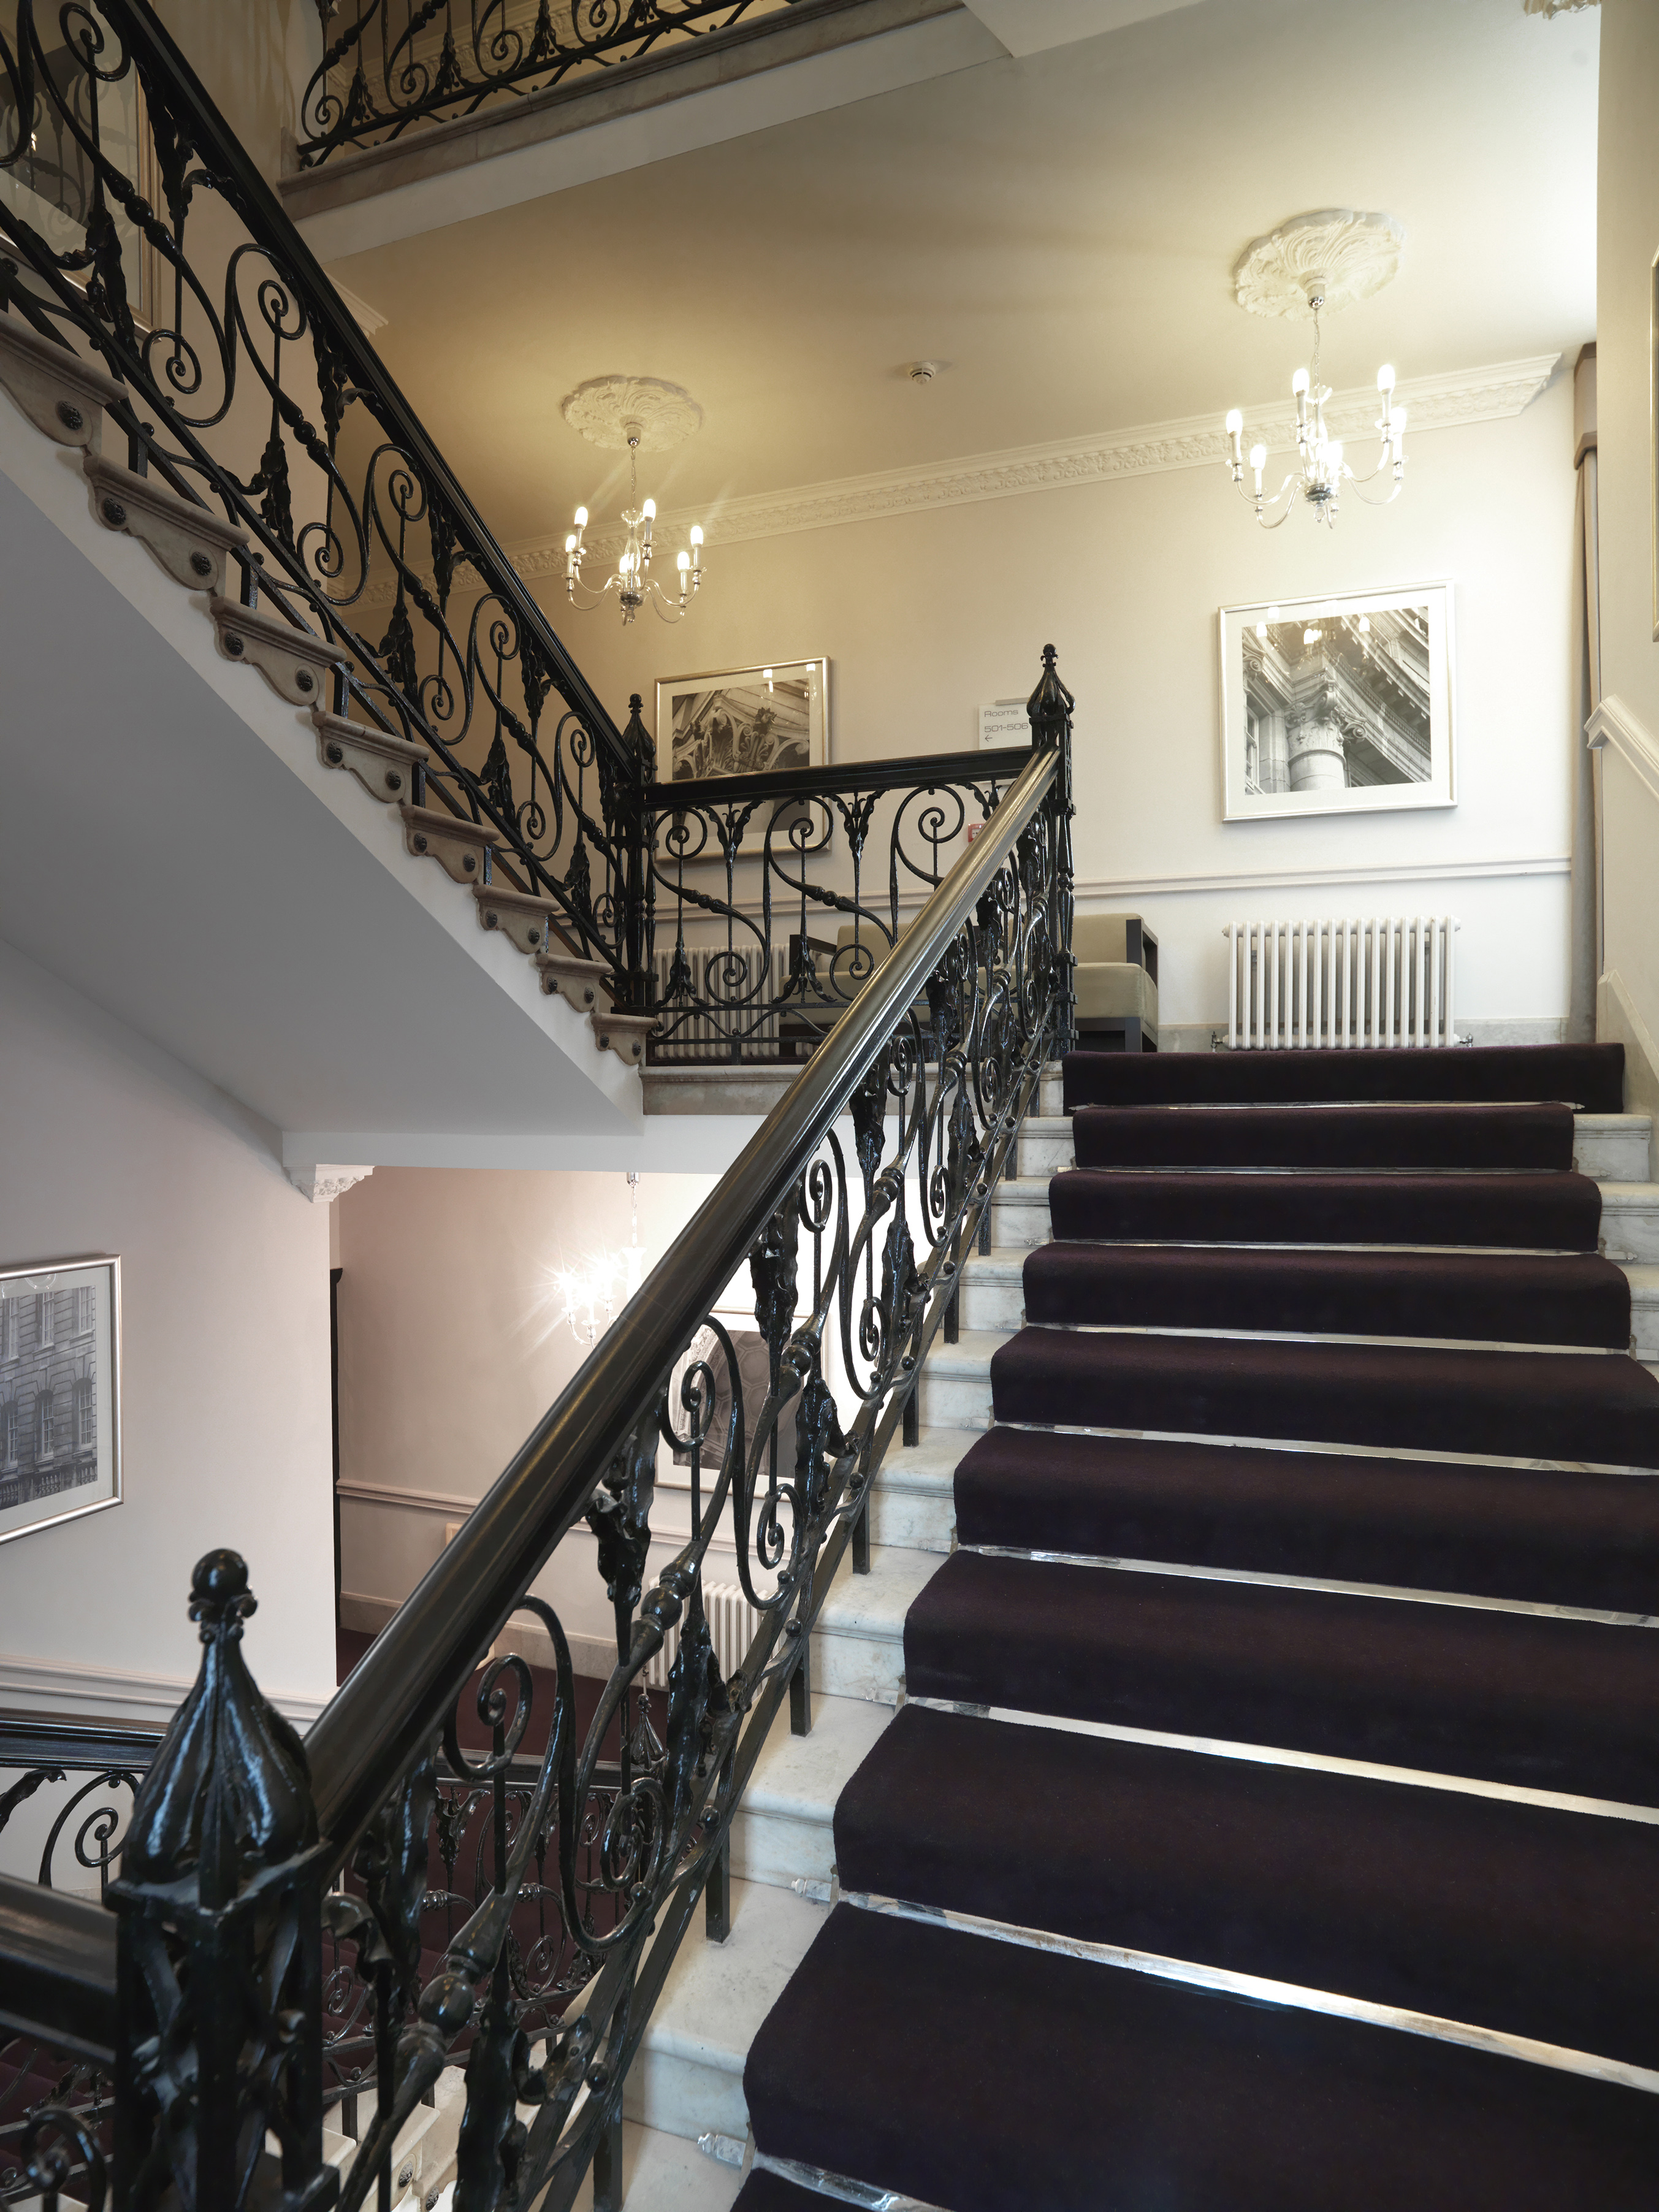 https://www.hotelsbyday.com/_data/default-hotel_image/0/4290/hi-h0bkr-27087778-thistle-london-hotel-lobby-detail.jpg